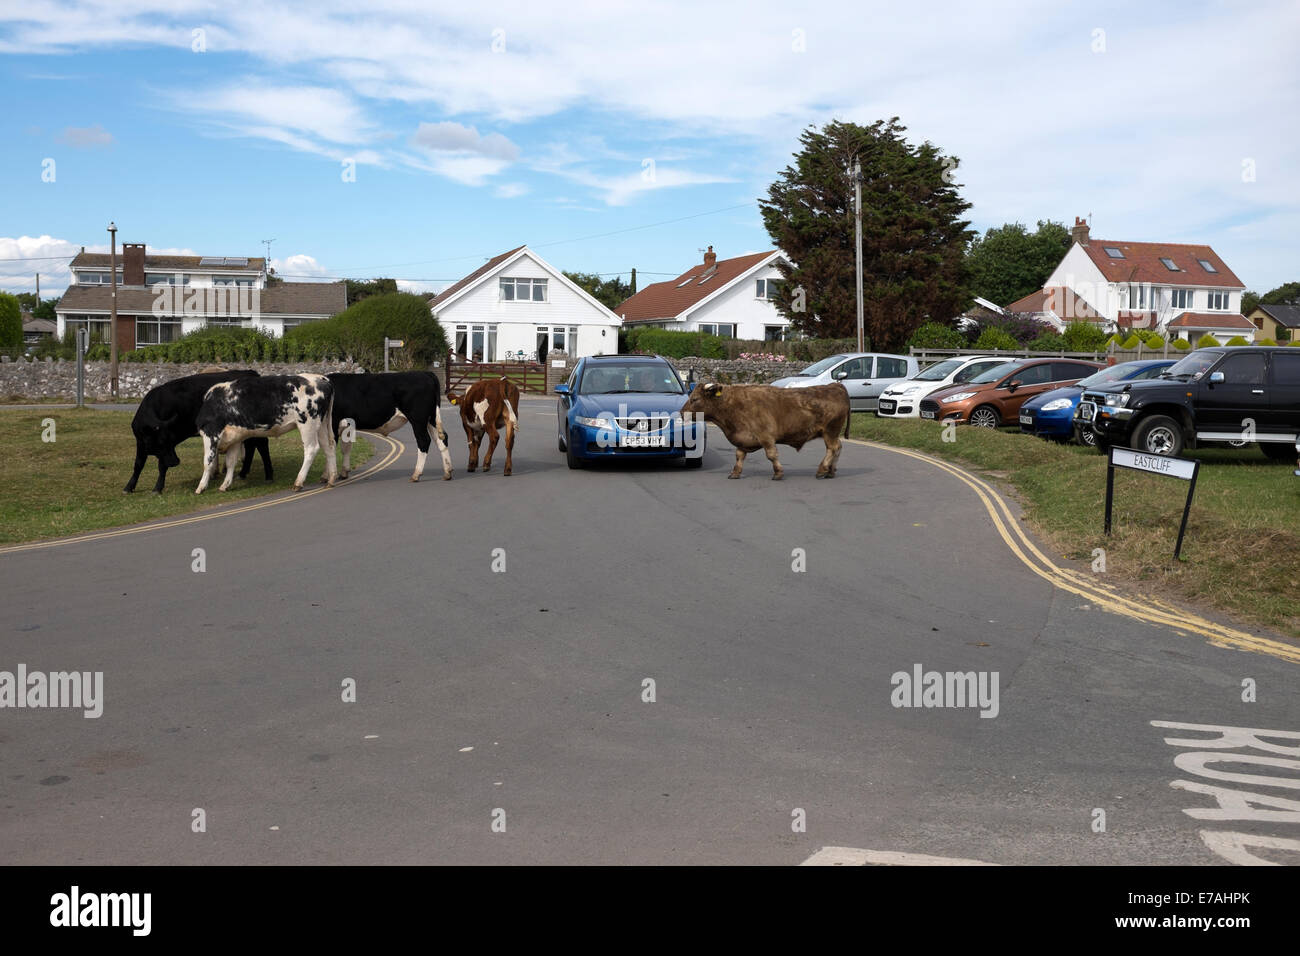 Cows crossing road in front of car wandering lost - Stock Image